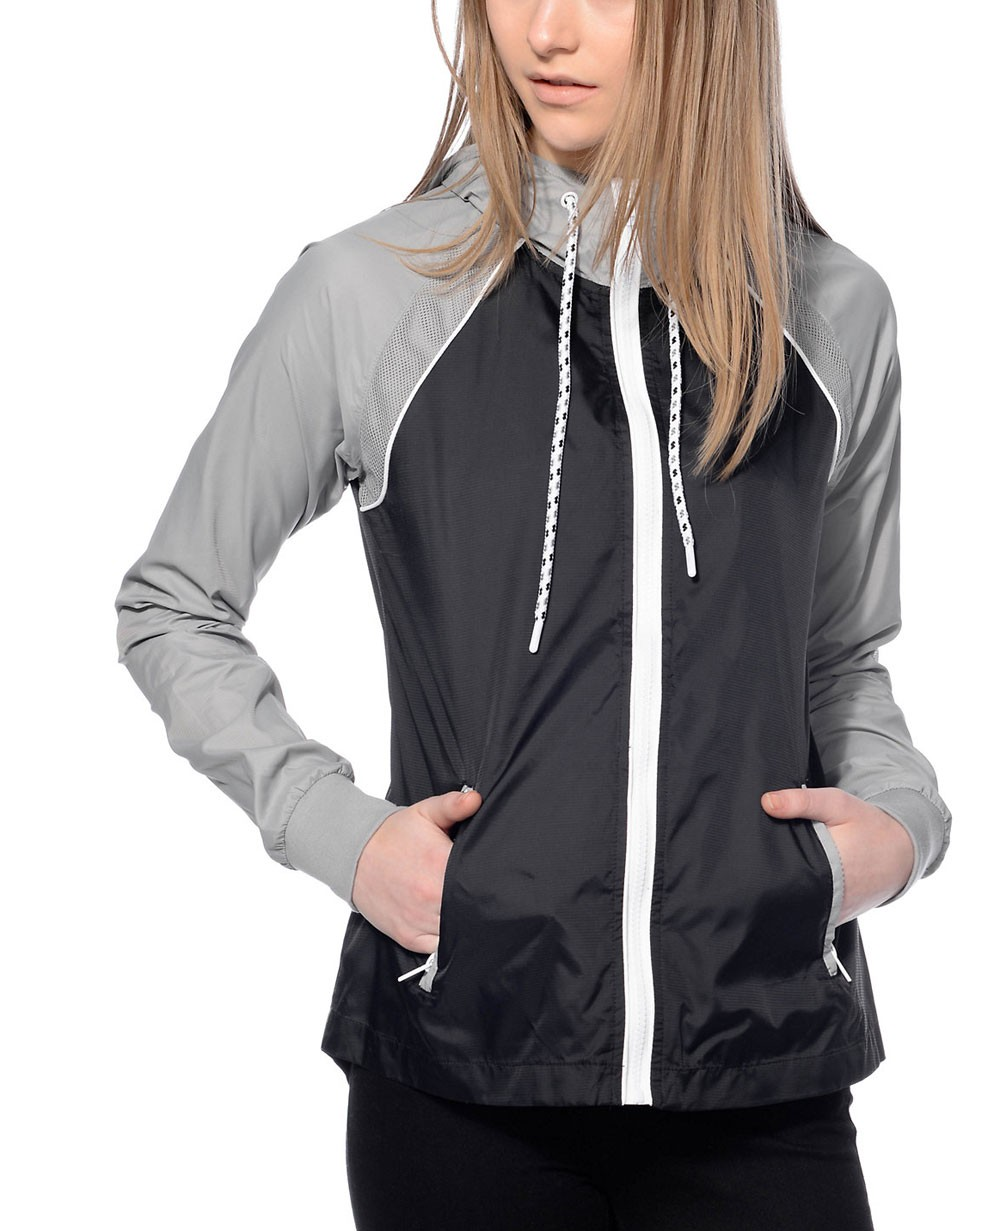 Women Raglan Sleeve Grey & Black Windbreaker Jacket